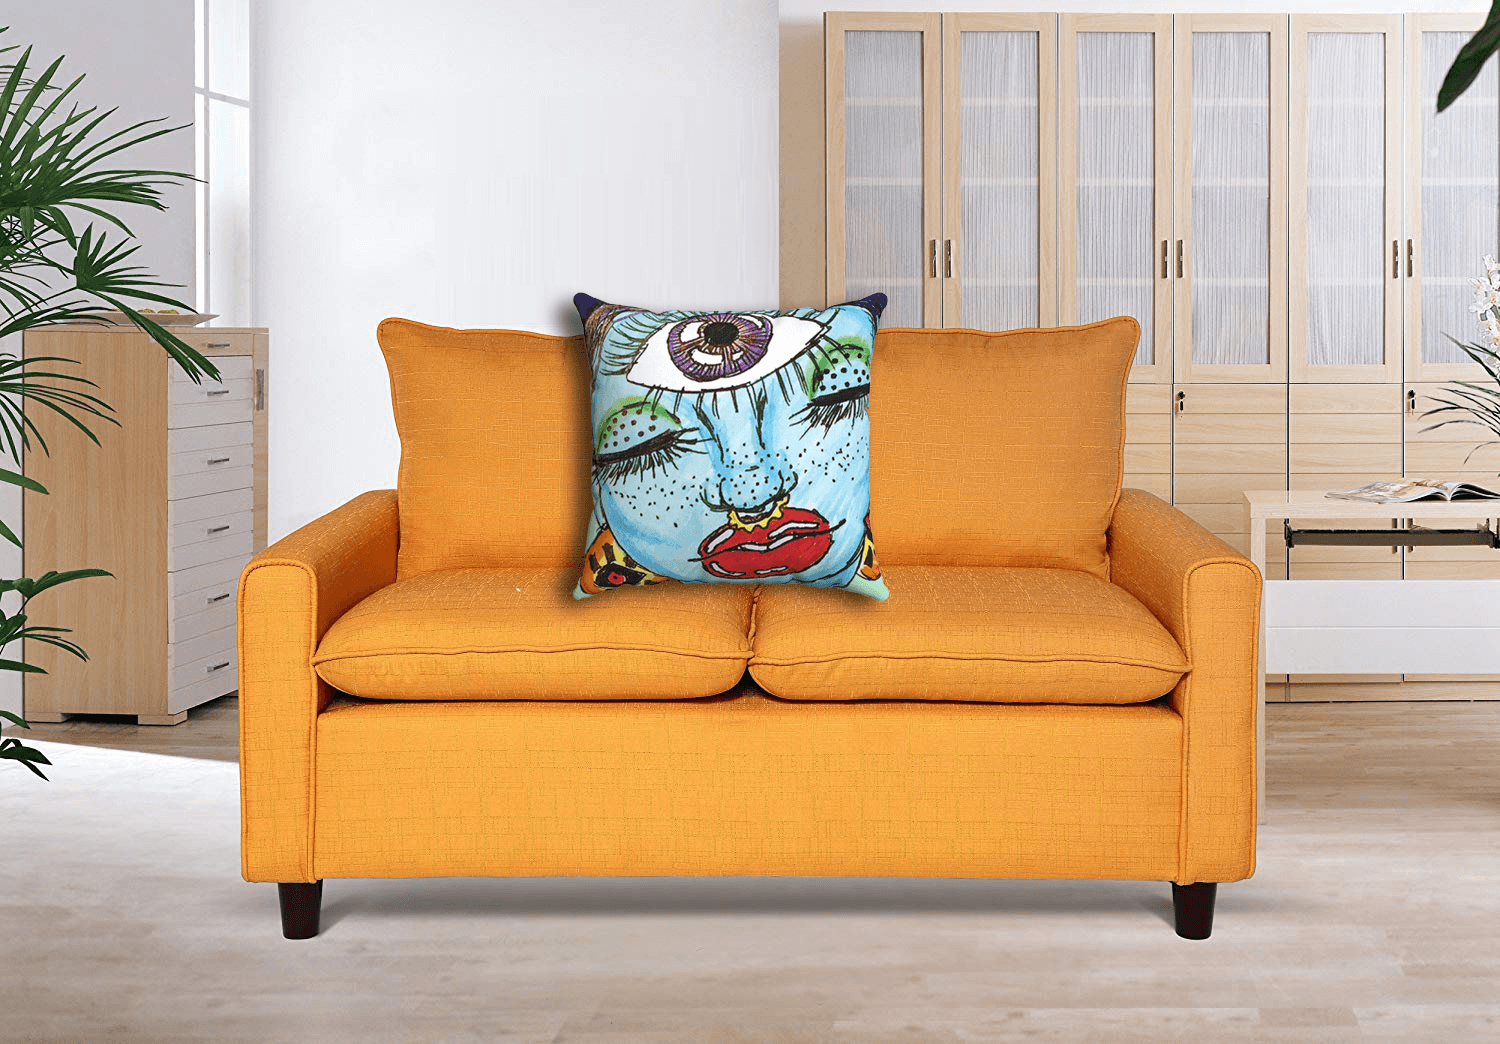 Third Eye Accent Pillow  by Ayanna Ali with  US Pride Furniture S5065 Fabric Modern Loveseat